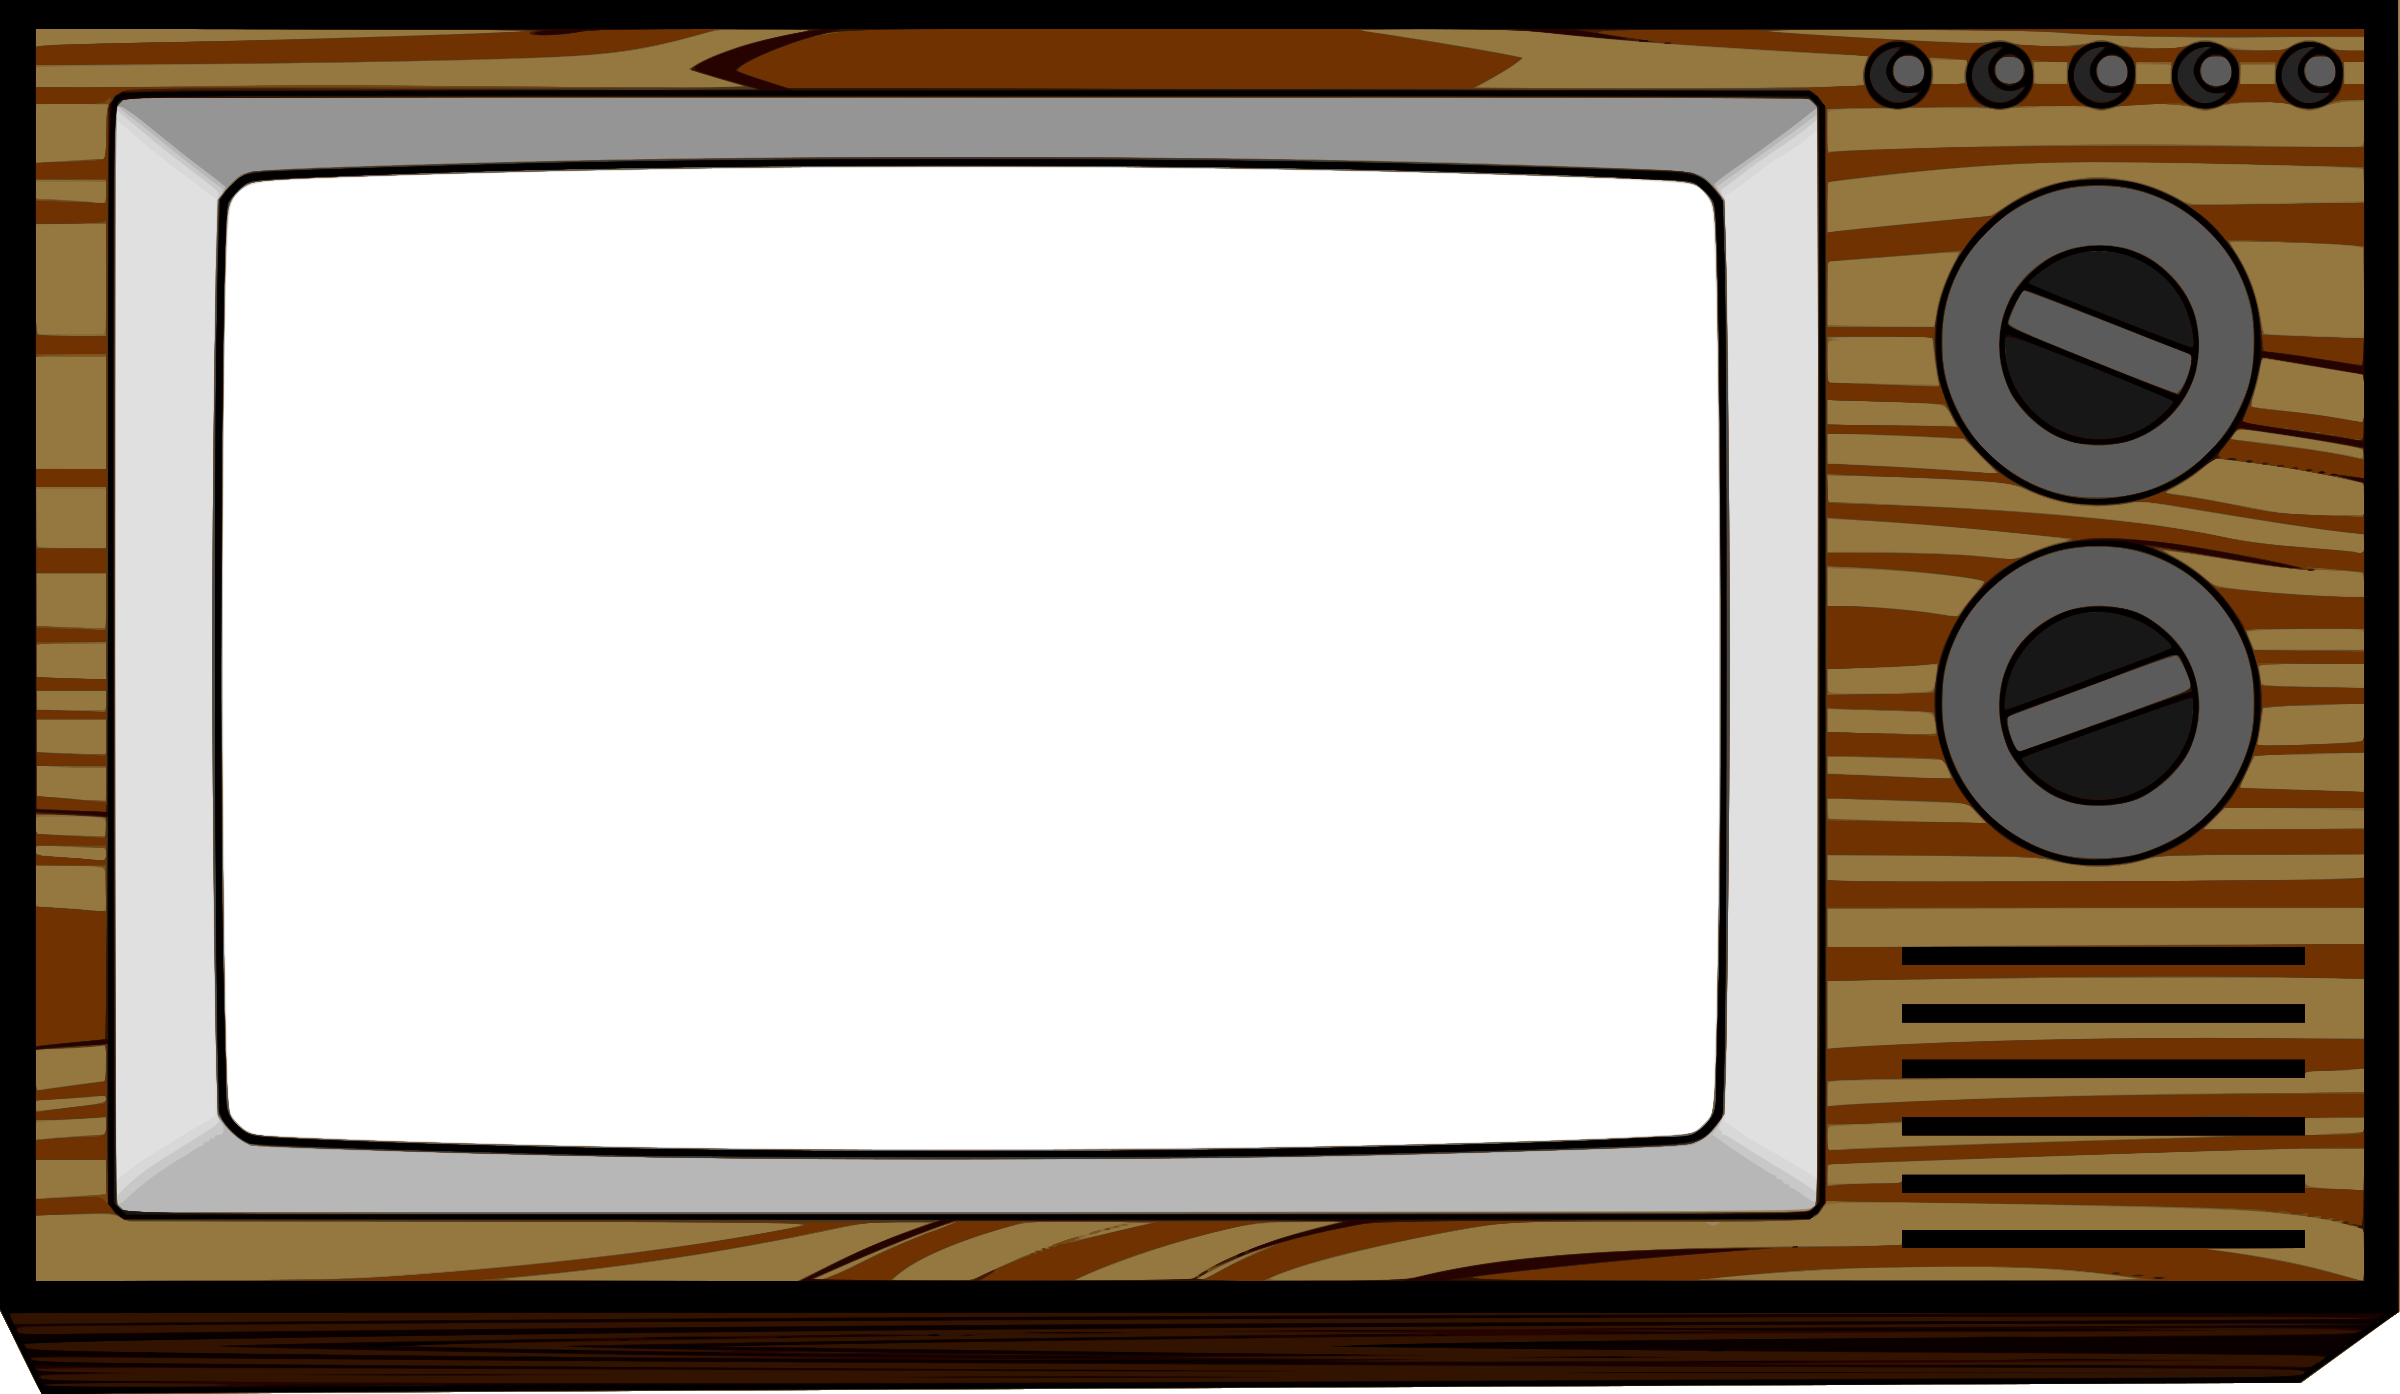 Frame pencil and in. Clipart tv illustration